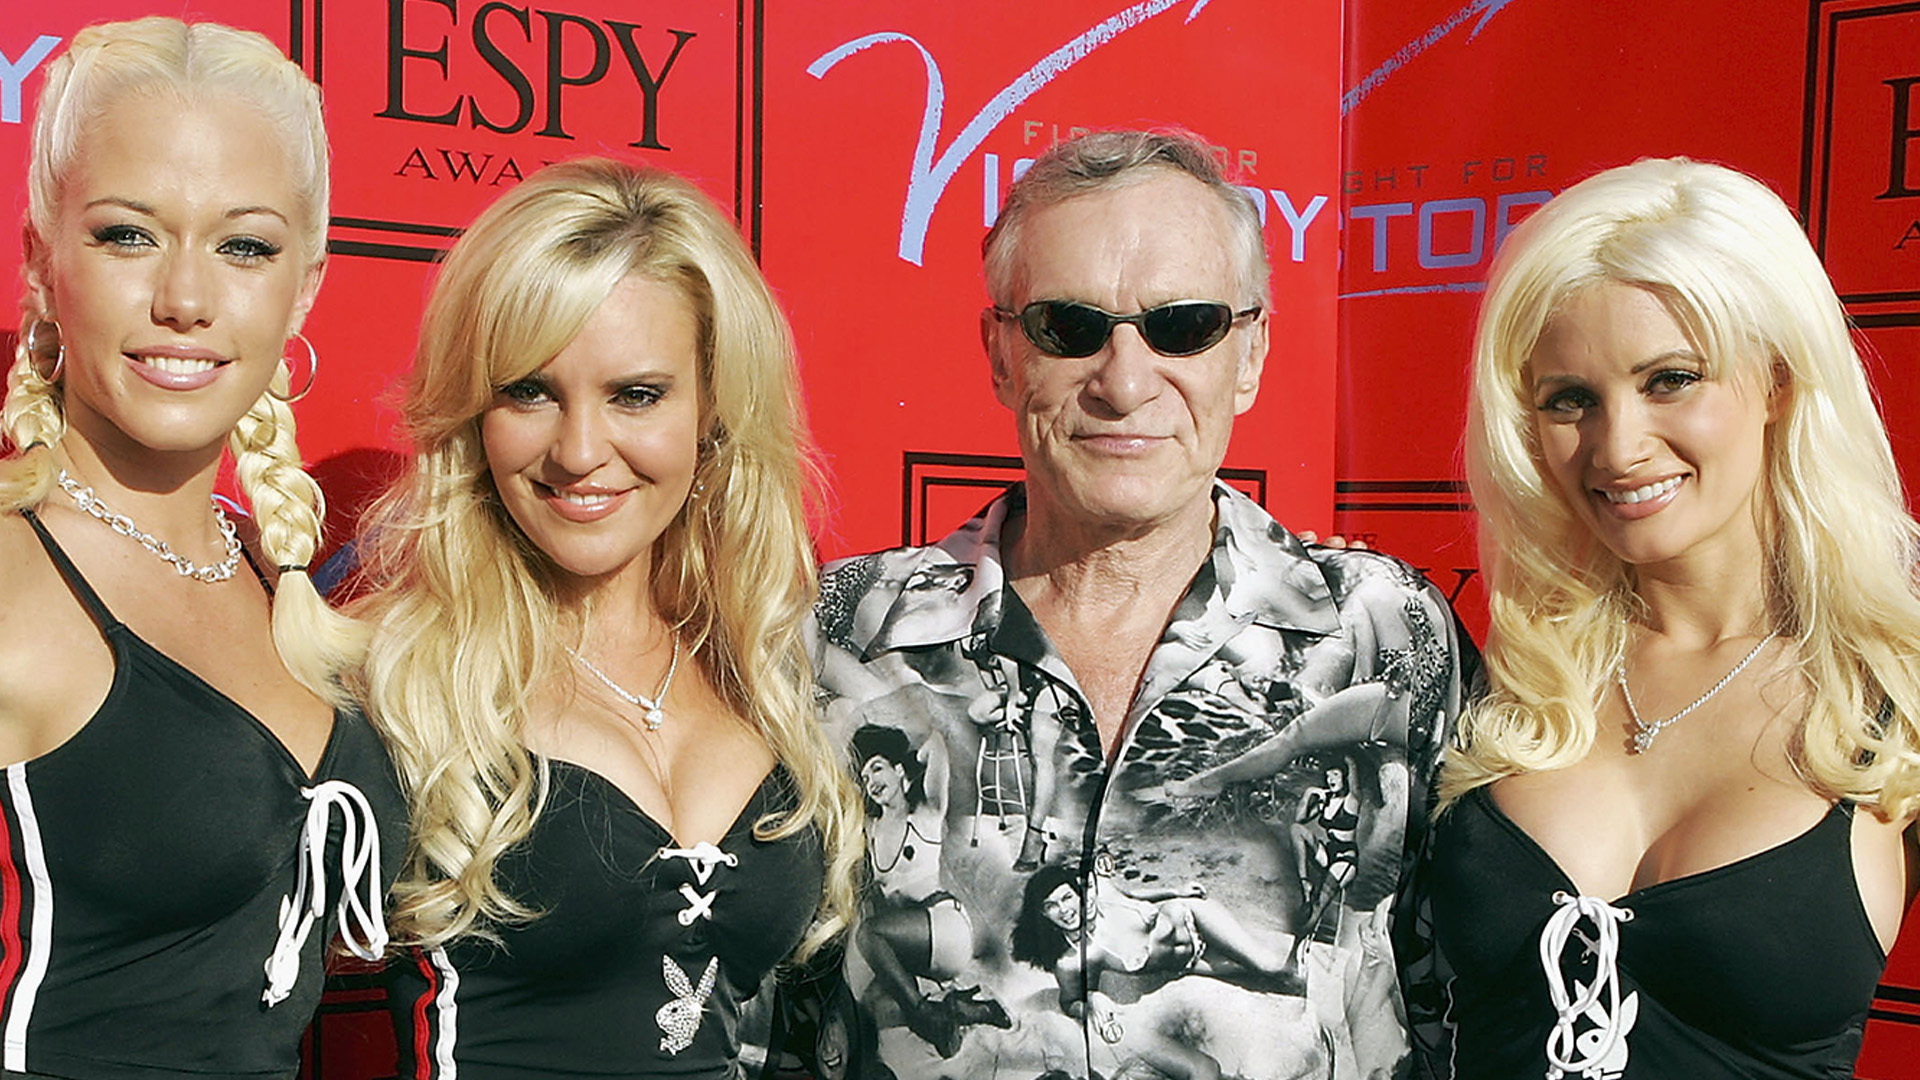 """BEVERLY HILLS, CA - JULY 12: Playboy's Hugh Hefner and his Playmates, Kendra Wilkinson (L), Bridget Marquardt and Holly Madison (R) arrive at """"Fight for Victory"""", the 13th Annual Espy Pre-Party hosted by Andy Roddick at the Playboy Mansion on July 12, 2005 in Beverly Hills, California. (Photo by Kevin Winter/Getty Images) *** Local Caption *** Hugh Hefner;Kendra Wilkinson;Holly Madison;Bridget Marquardt"""